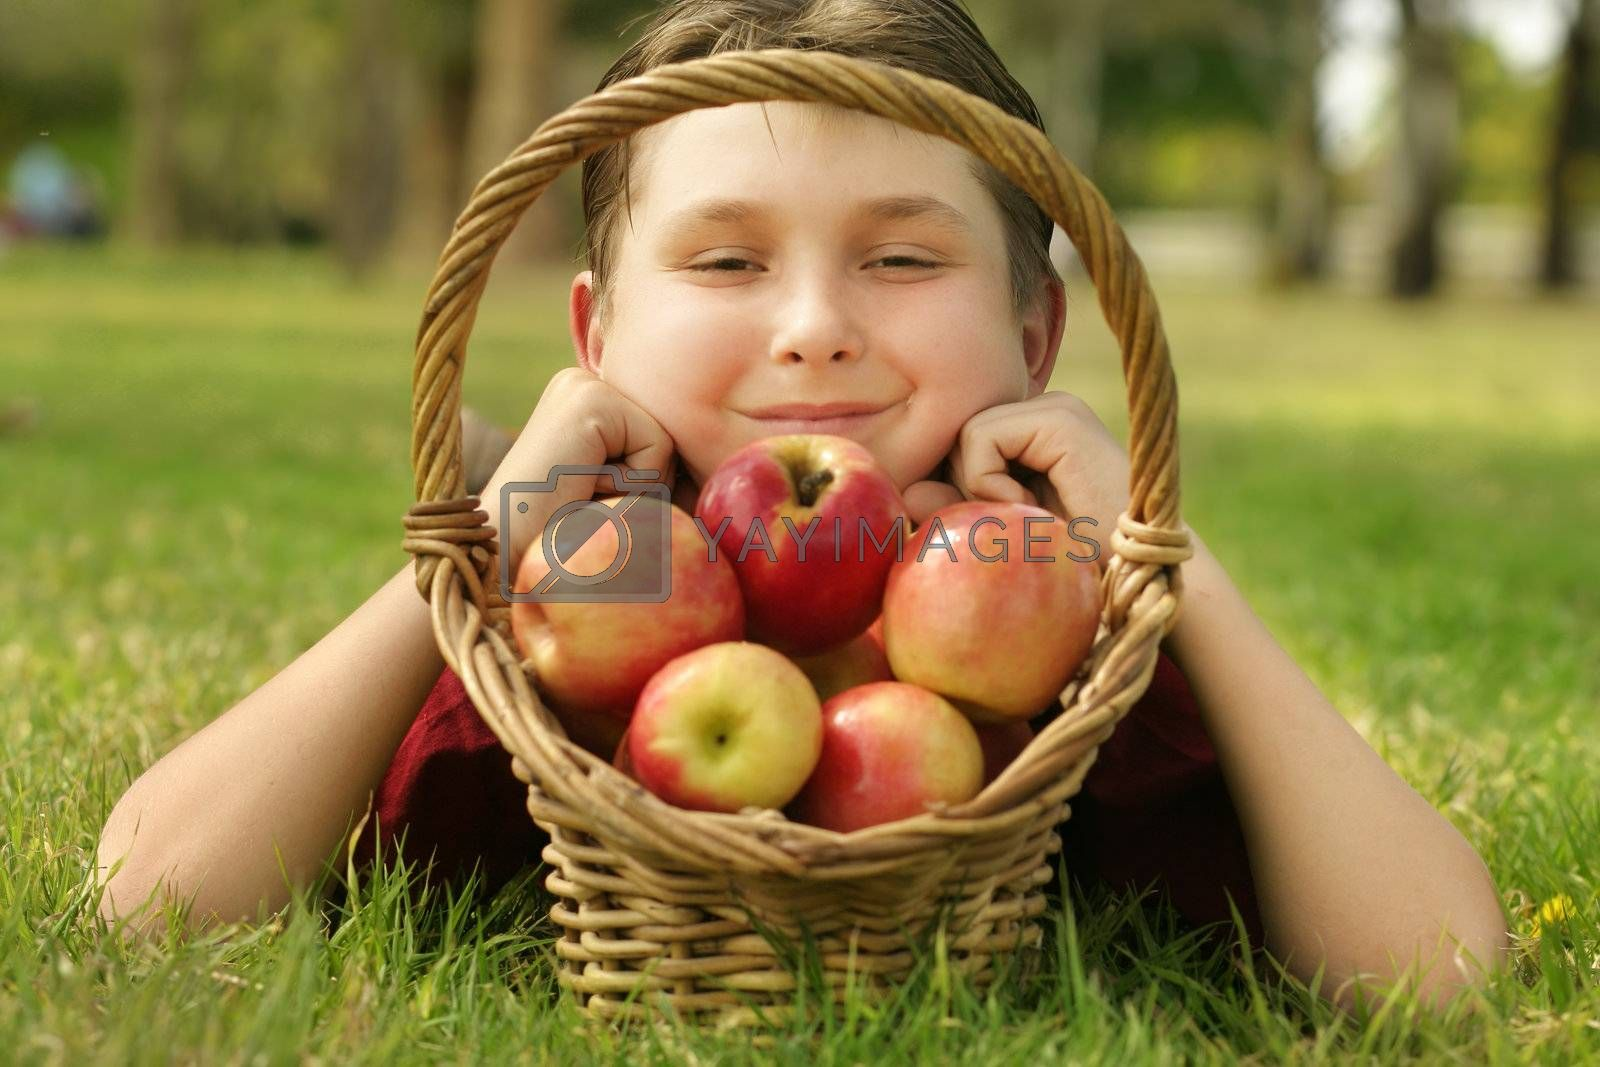 Child with a Basket of Apples by lovleah